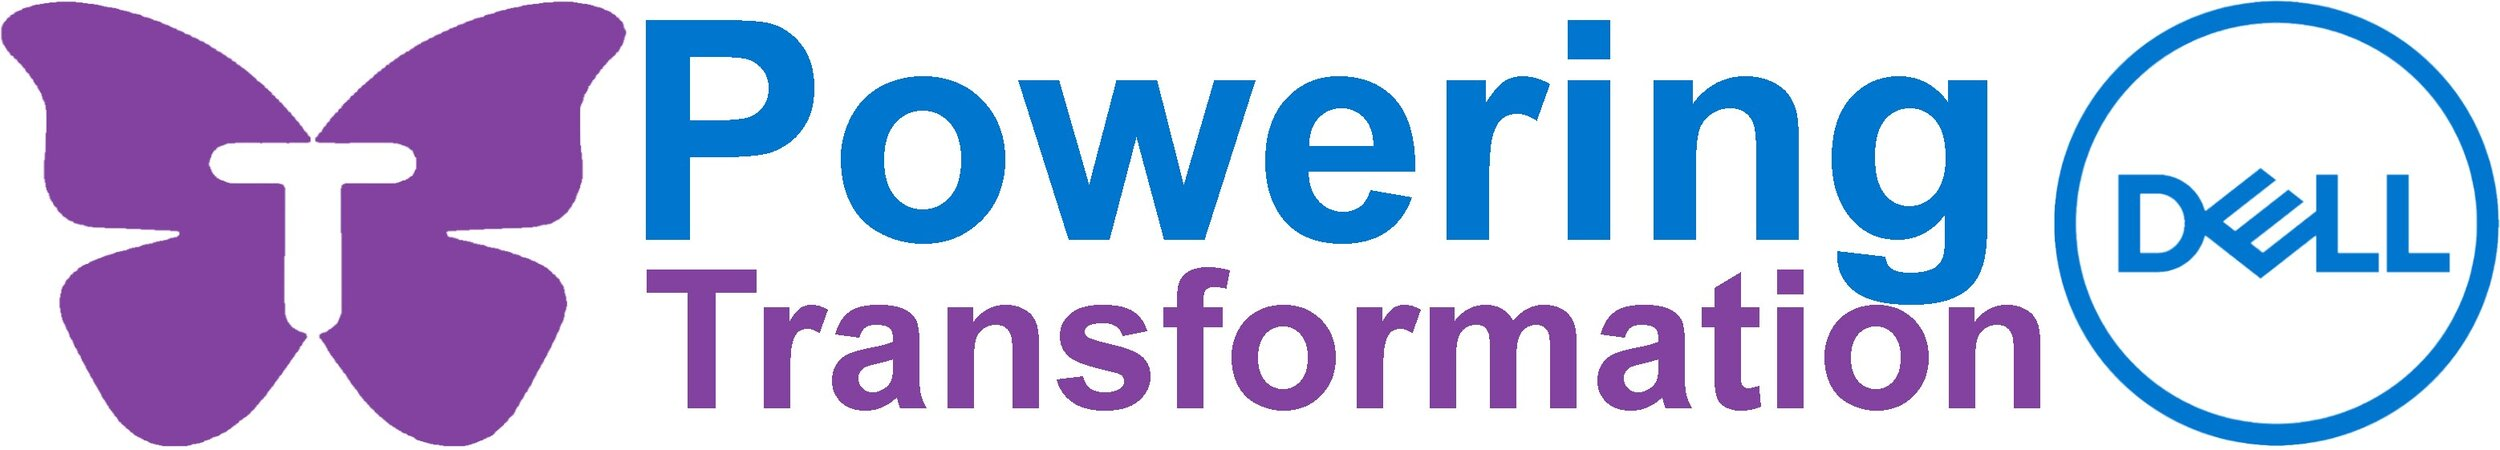 Powering Transformation logo 1.jpg